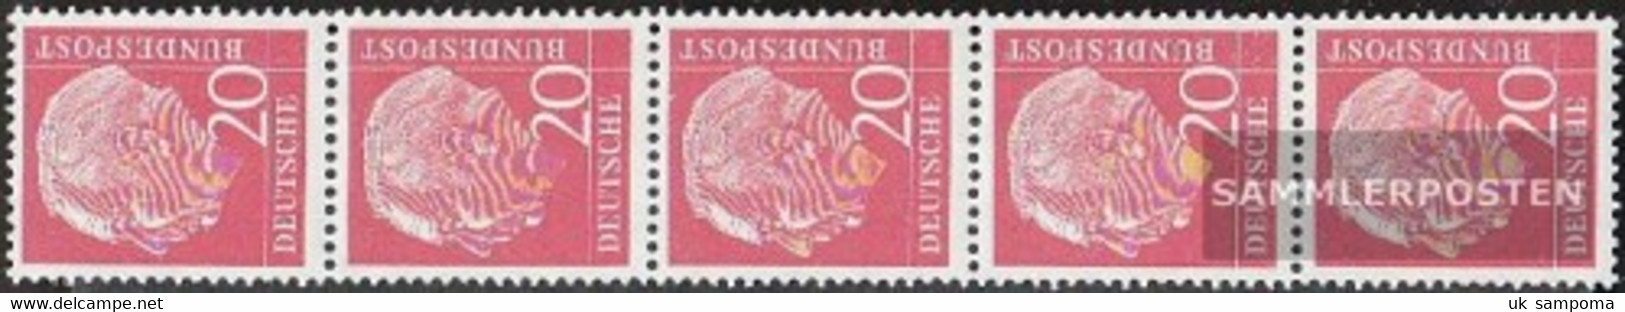 FRD (FR.Germany) 185x V R Five Strips Ribbed Gumming Unmounted Mint / Never Hinged 1954 Heuss - Unused Stamps